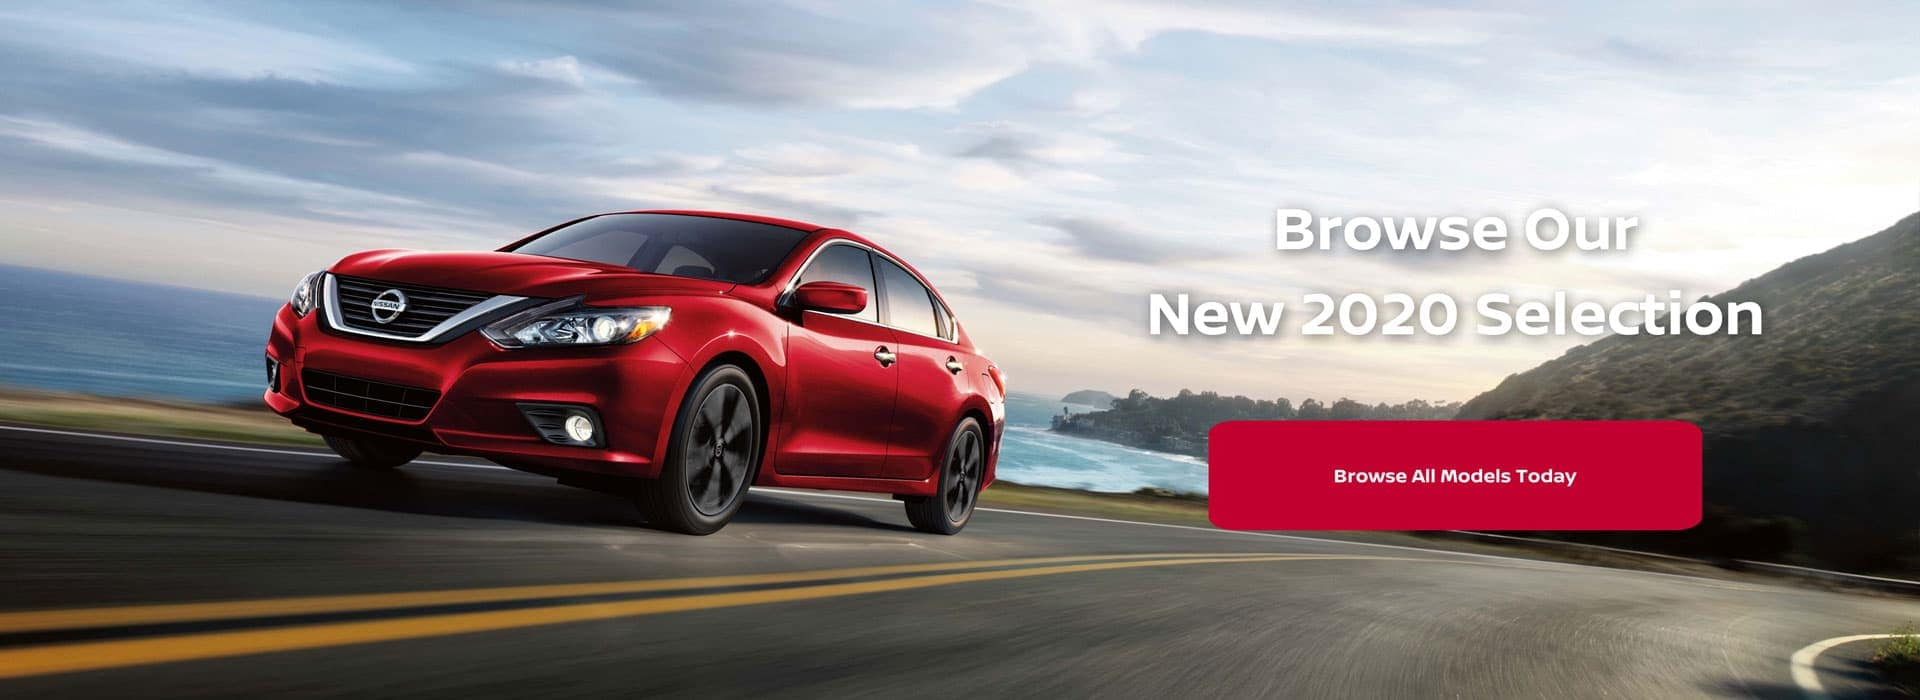 Red Nissan sedan driving down a road. Browse our new 2020 selection